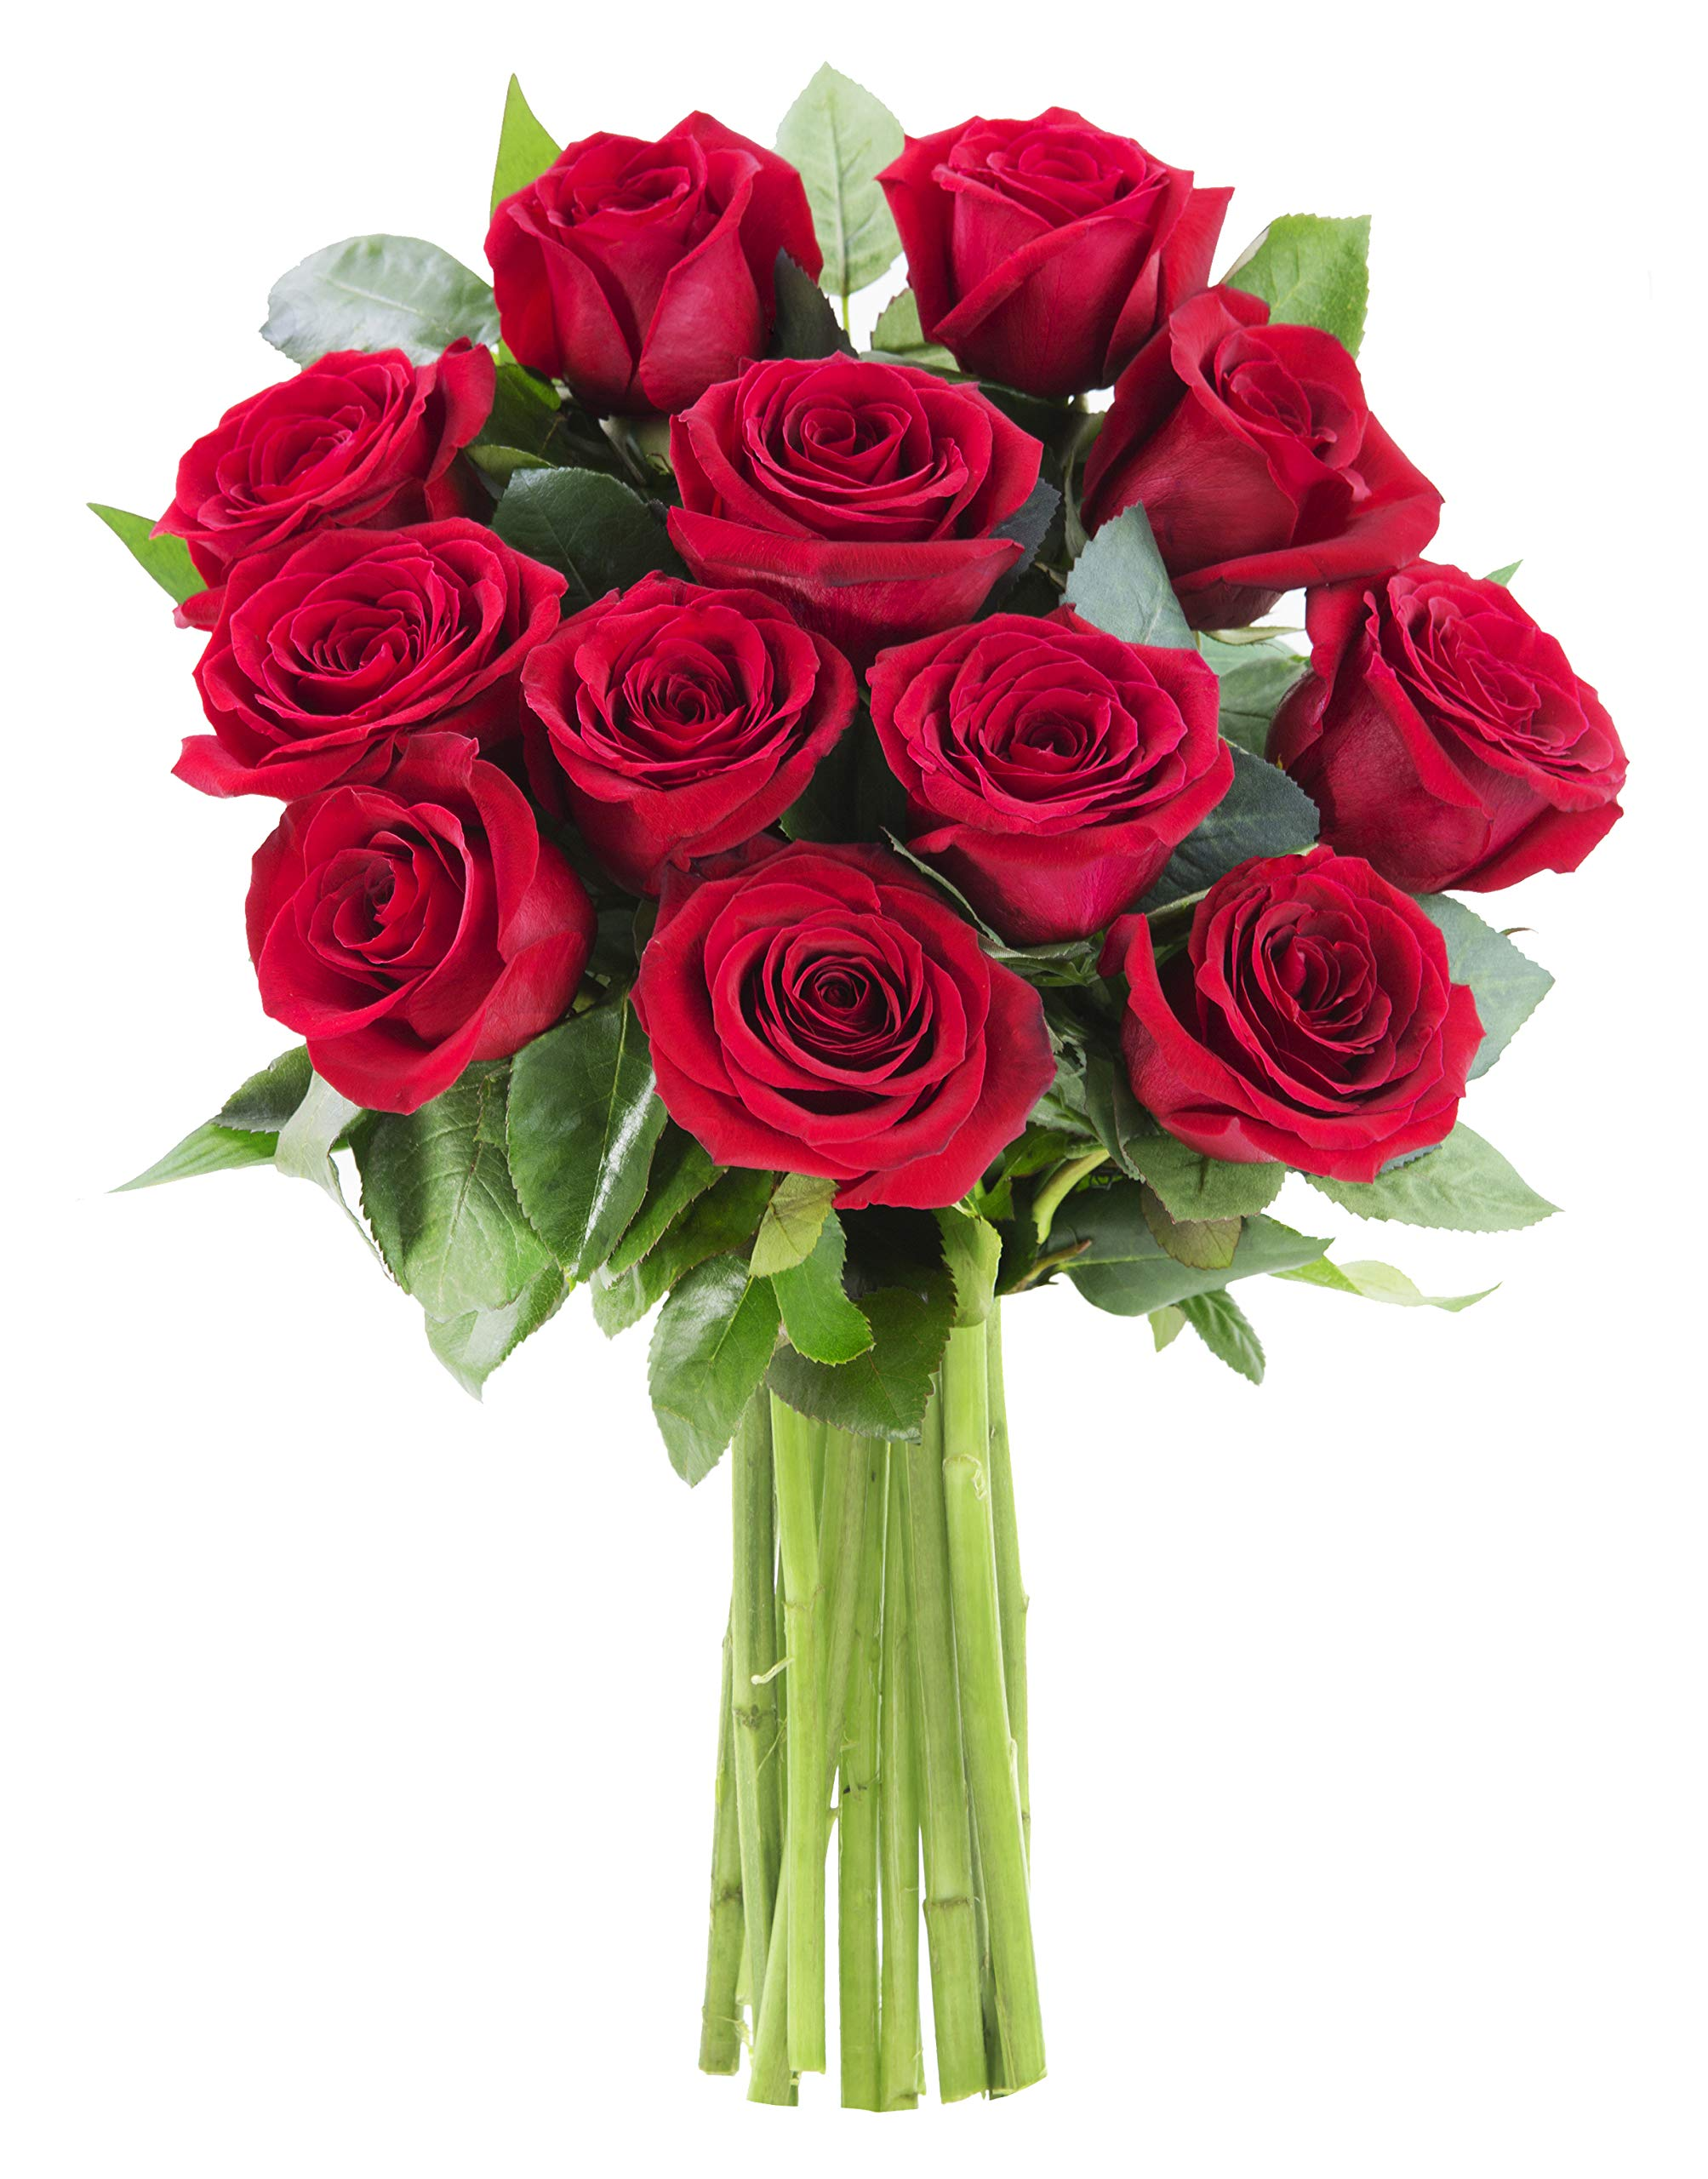 KaBloom The Romantic Classic Bouquet of 12 Fresh Red Roses (Farm-Fresh, Long-Stem) by KaBloom (Image #2)